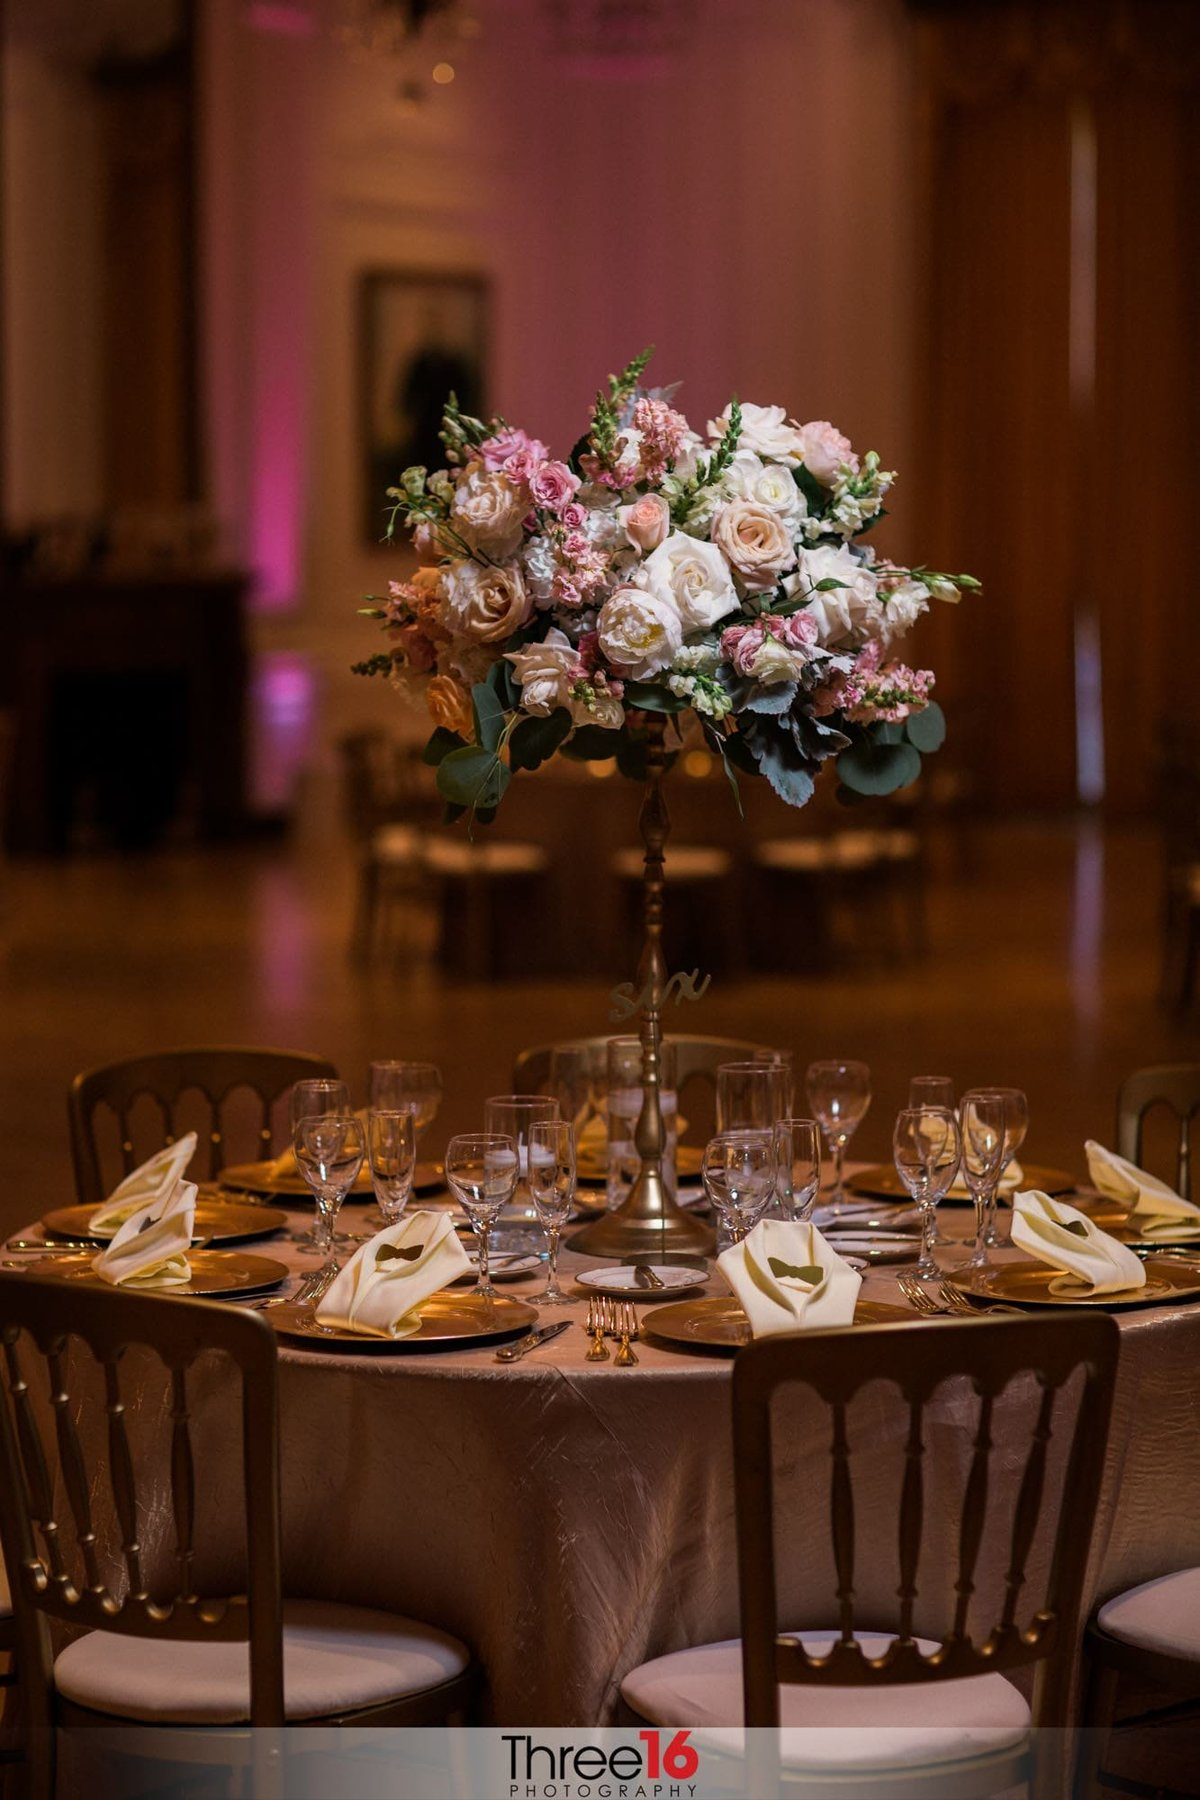 A table setup with centerpiece for wedding reception